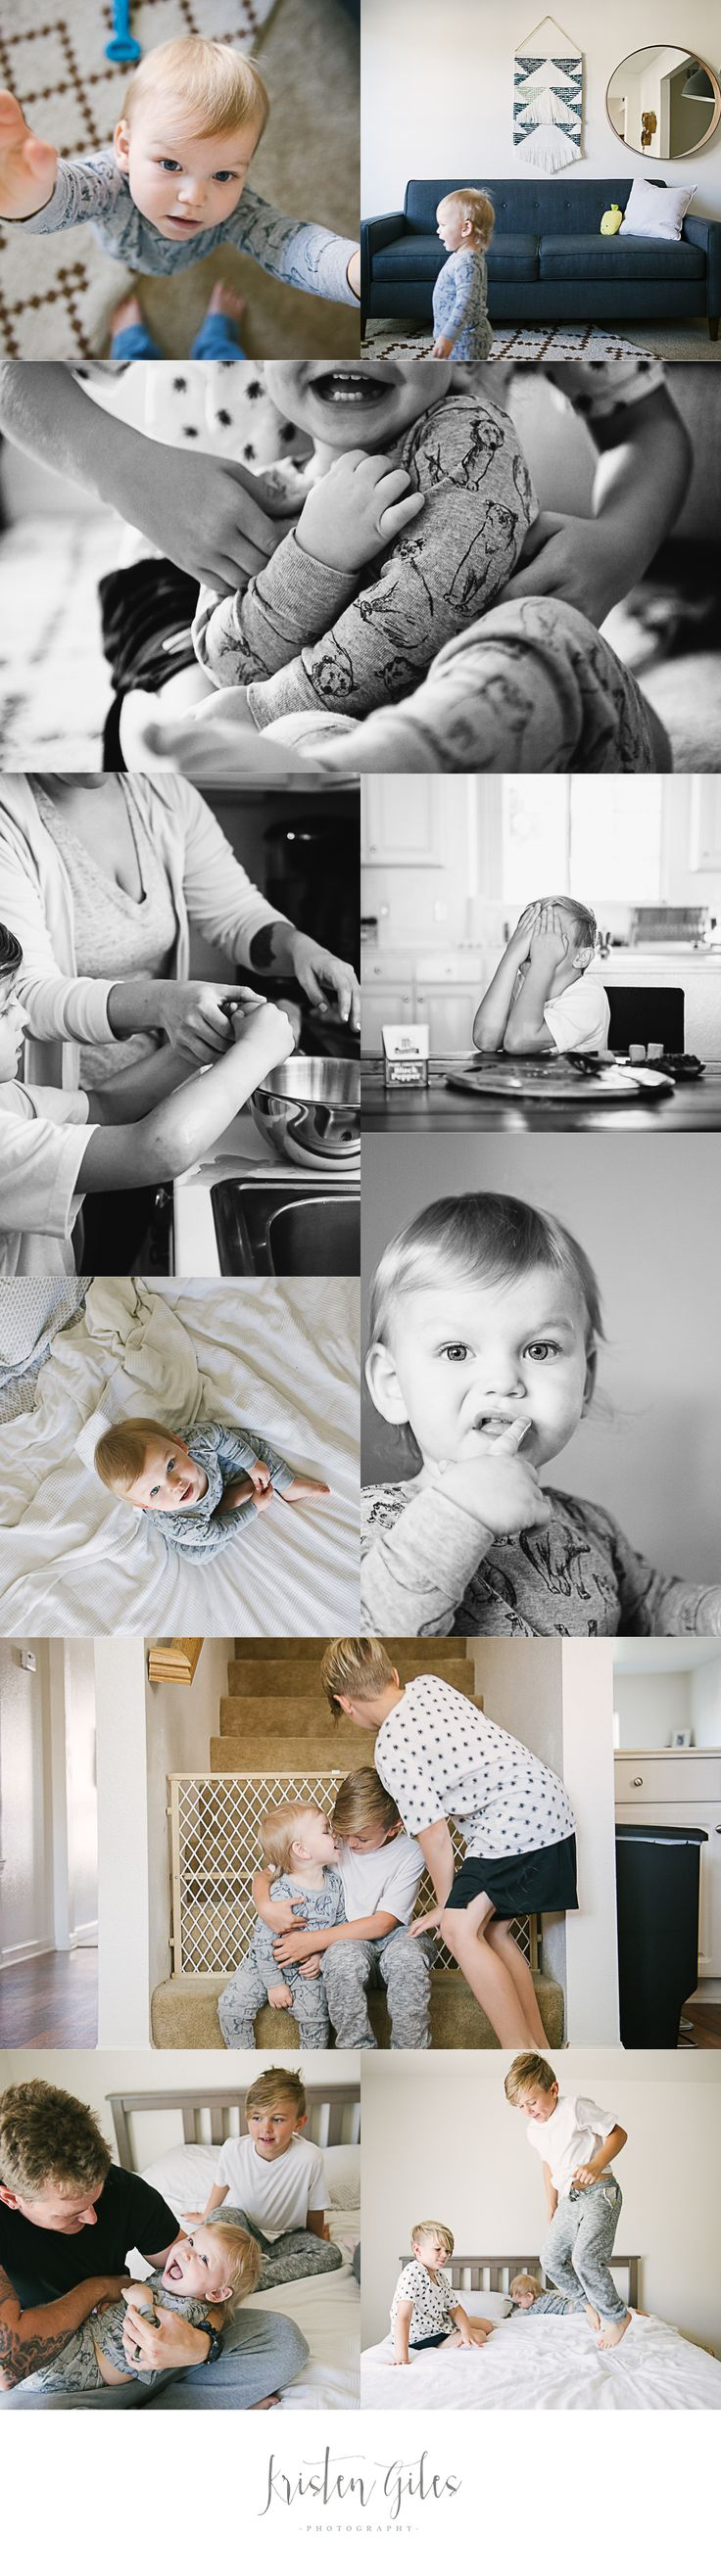 Family // Lifestyle Photography | Kristen Giles Photography